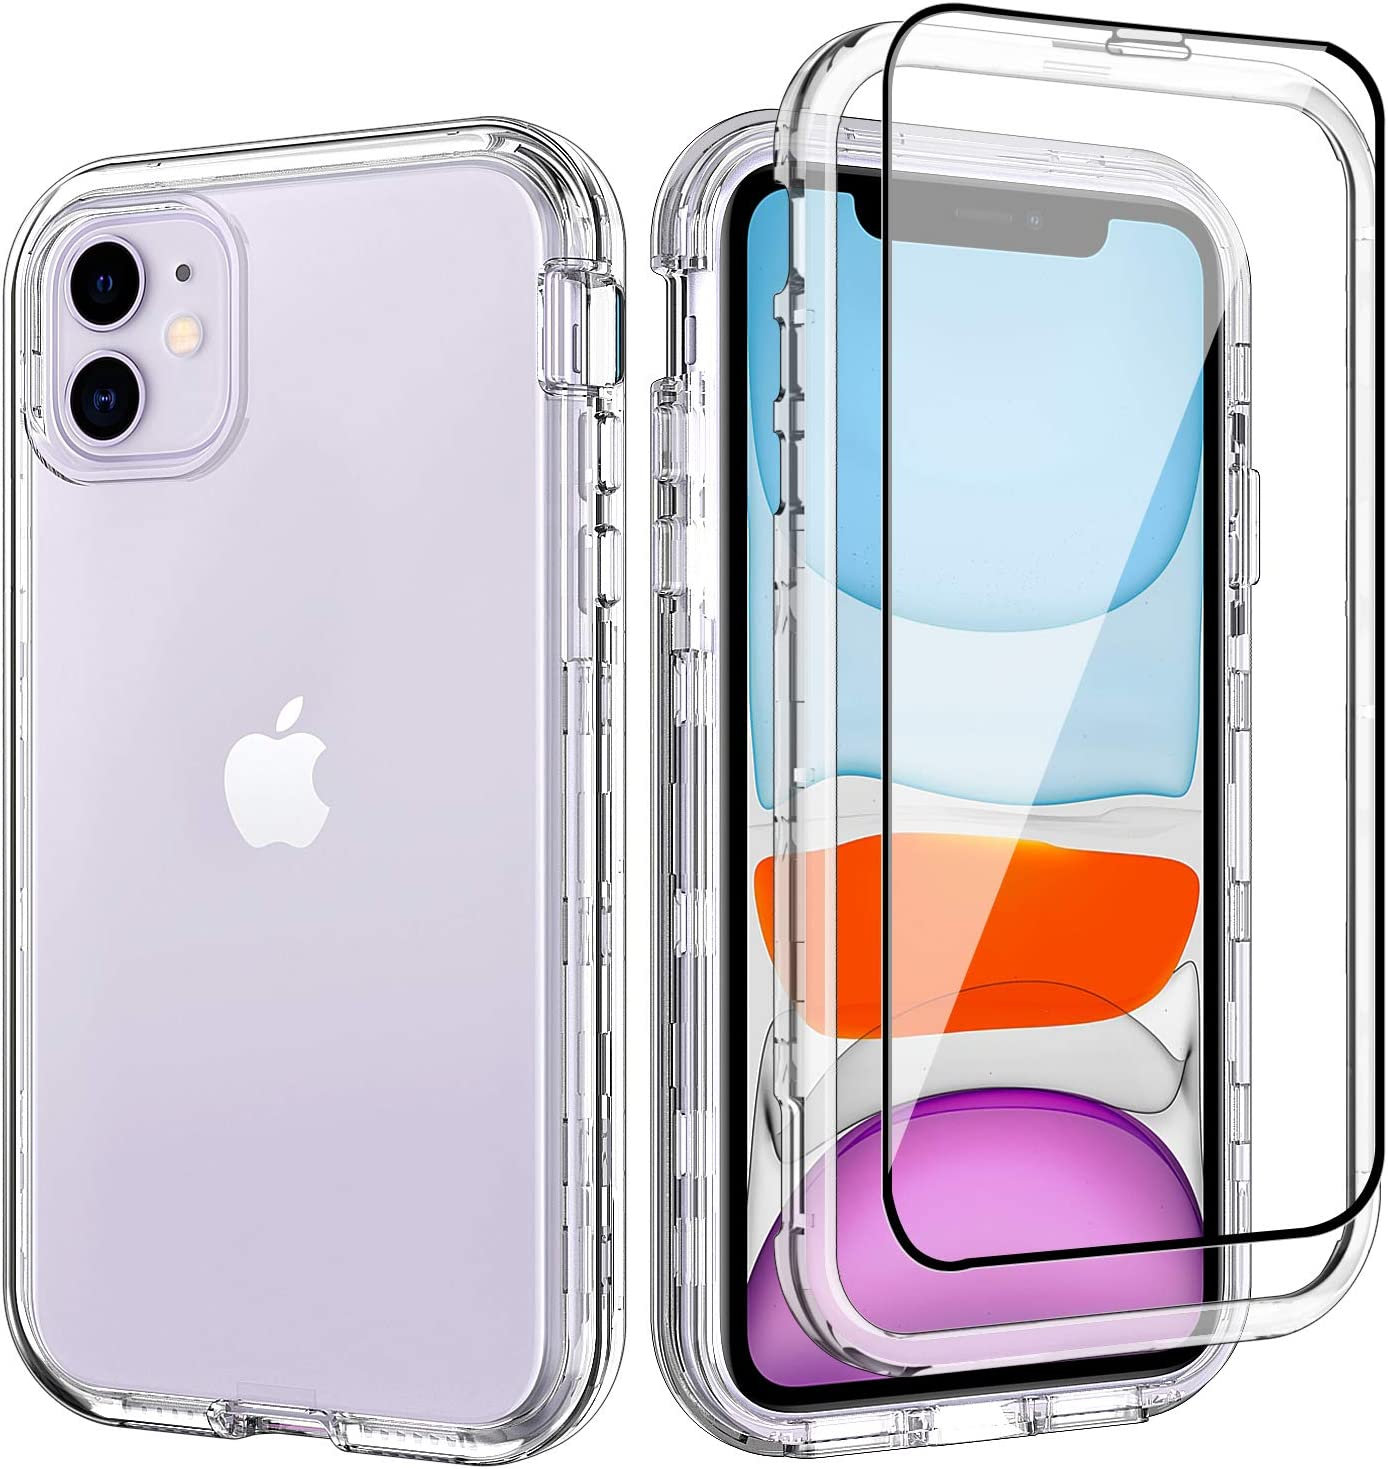 ACKETBOX iPhone 11 Case with Screen Protector 3in1 Hybrid Impact Defender Shockproof Armor Resistant Clear PC Back Case and Bumper+TPU Full Body Cover for iPhone 11 6.1 Inch(Clear)